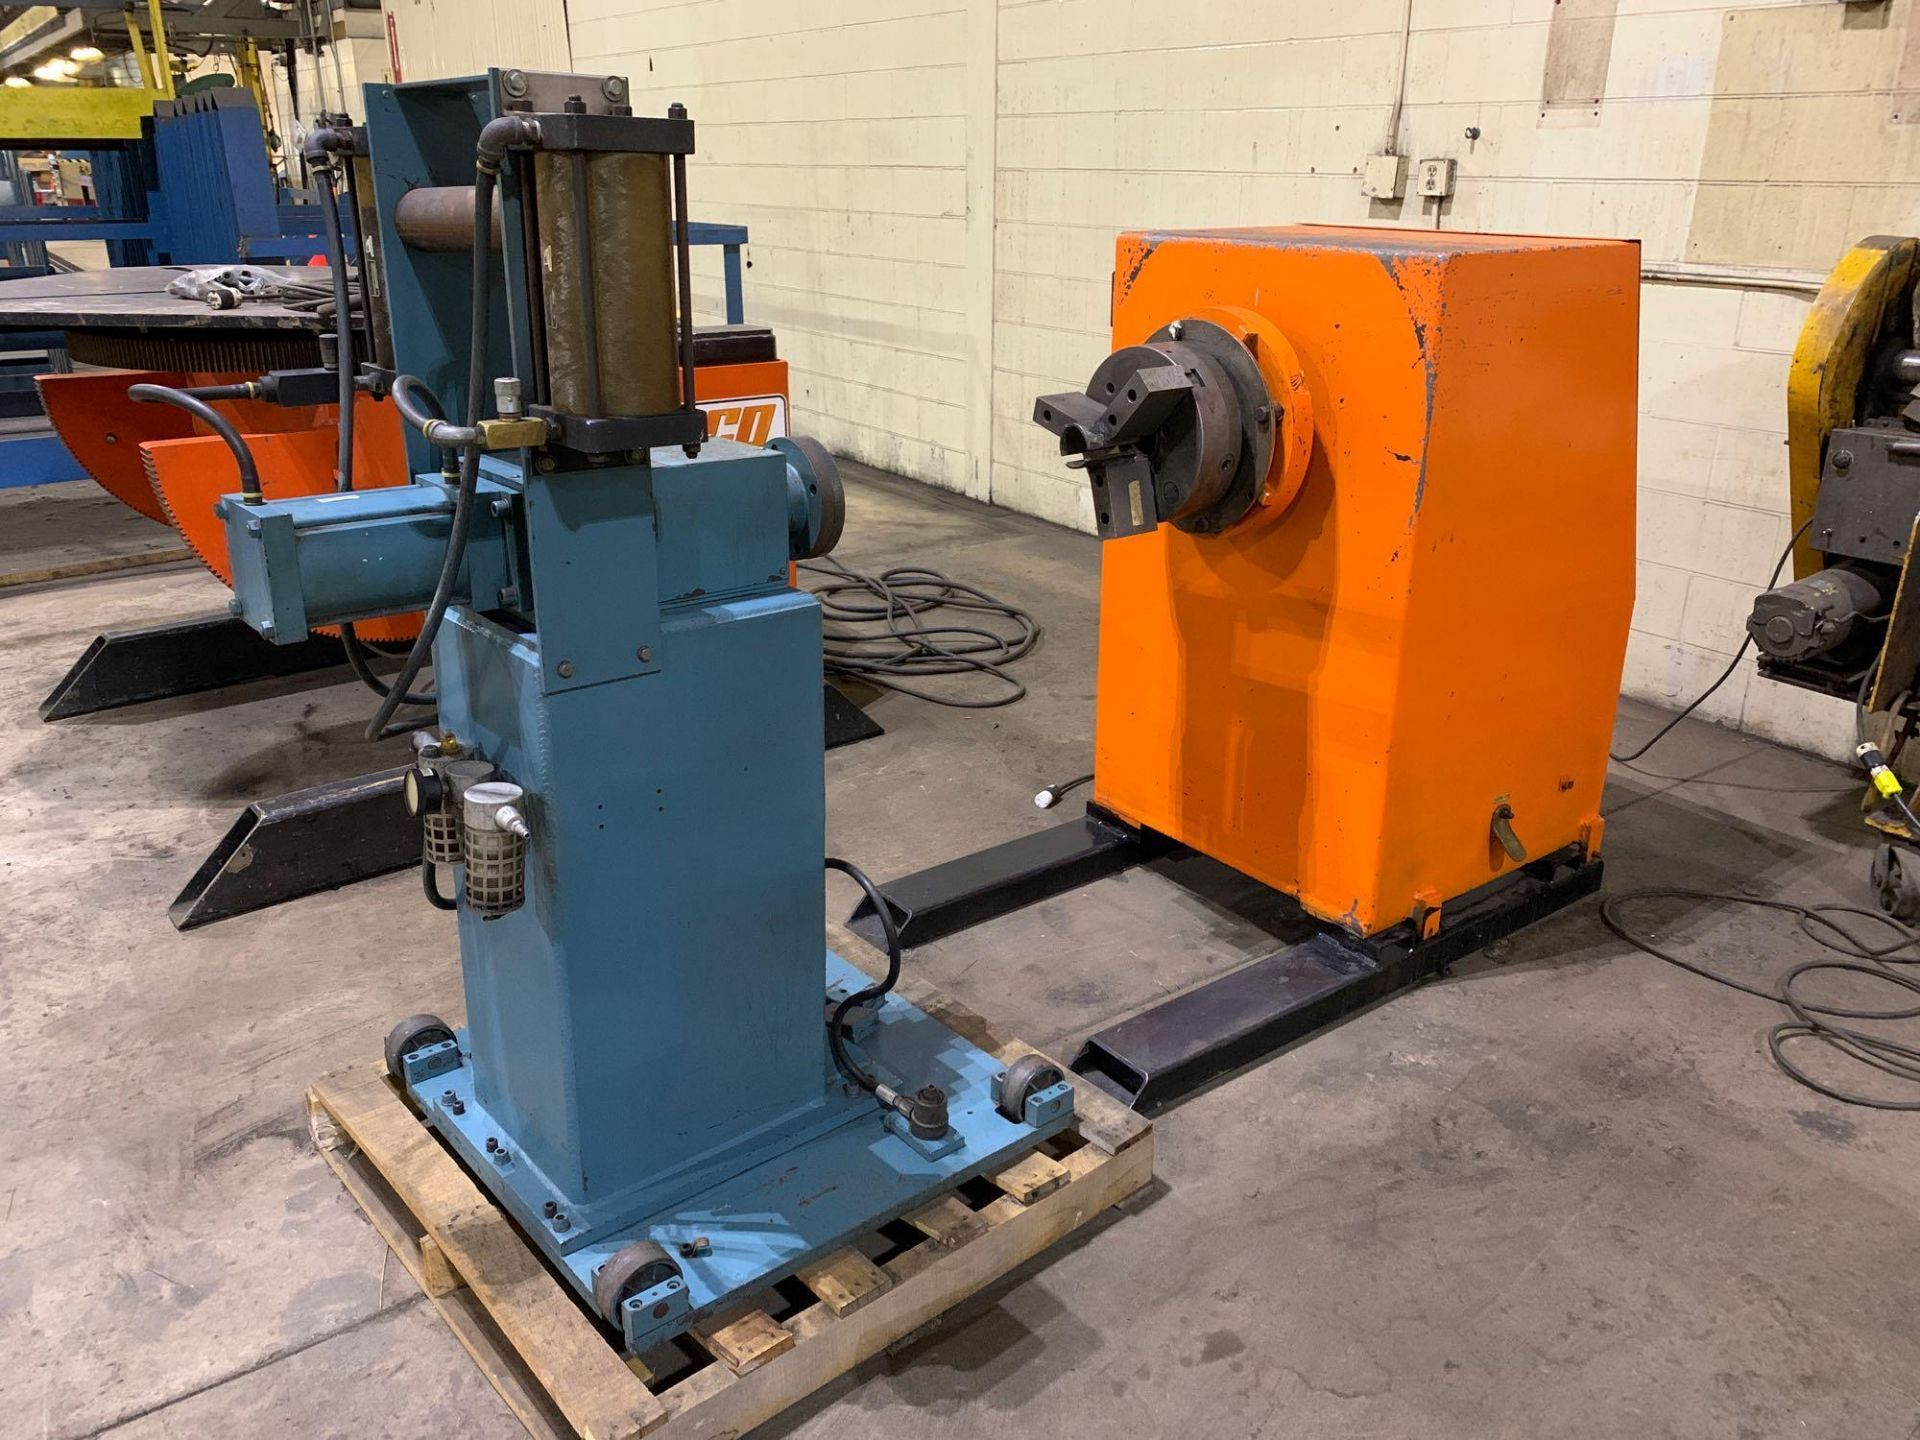 Jetline Welding Positioner Model CU5-216 Serial Number: 07625 Pipe Weld Positioner with Tail Stock I - Image 2 of 15